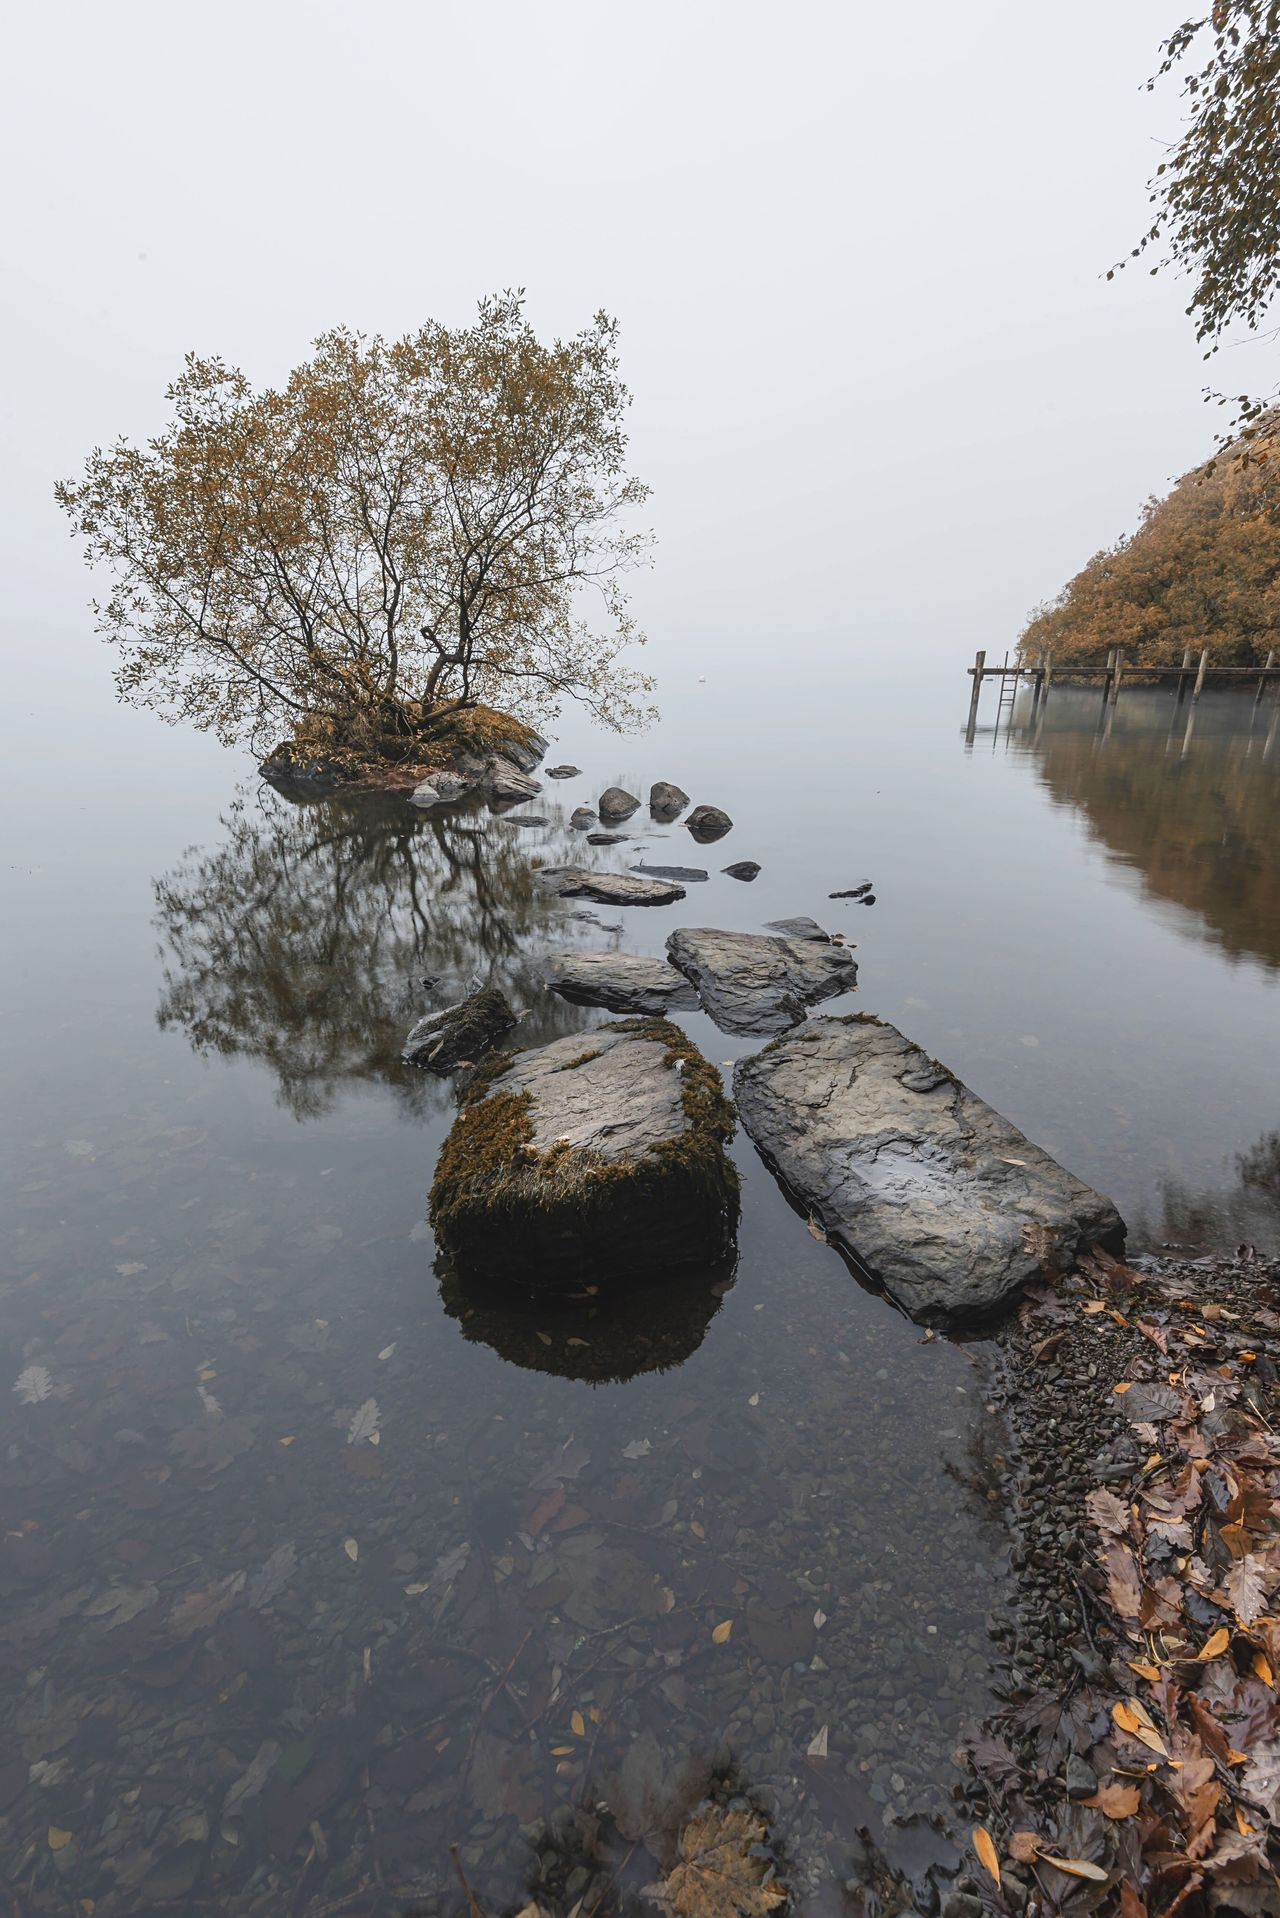 Steps Water Reflection Lake Tranquility Nature Rock - Object No People Outdoors Autumn Scenics Beauty In Nature Landscape Lone Tree The Great Outdoors - 2017 EyeEm Awards Lake View Lake District Cumbria Misty Foggy Waterscape Tranquil Scene Rocks And Water Rocks Tree Trunk